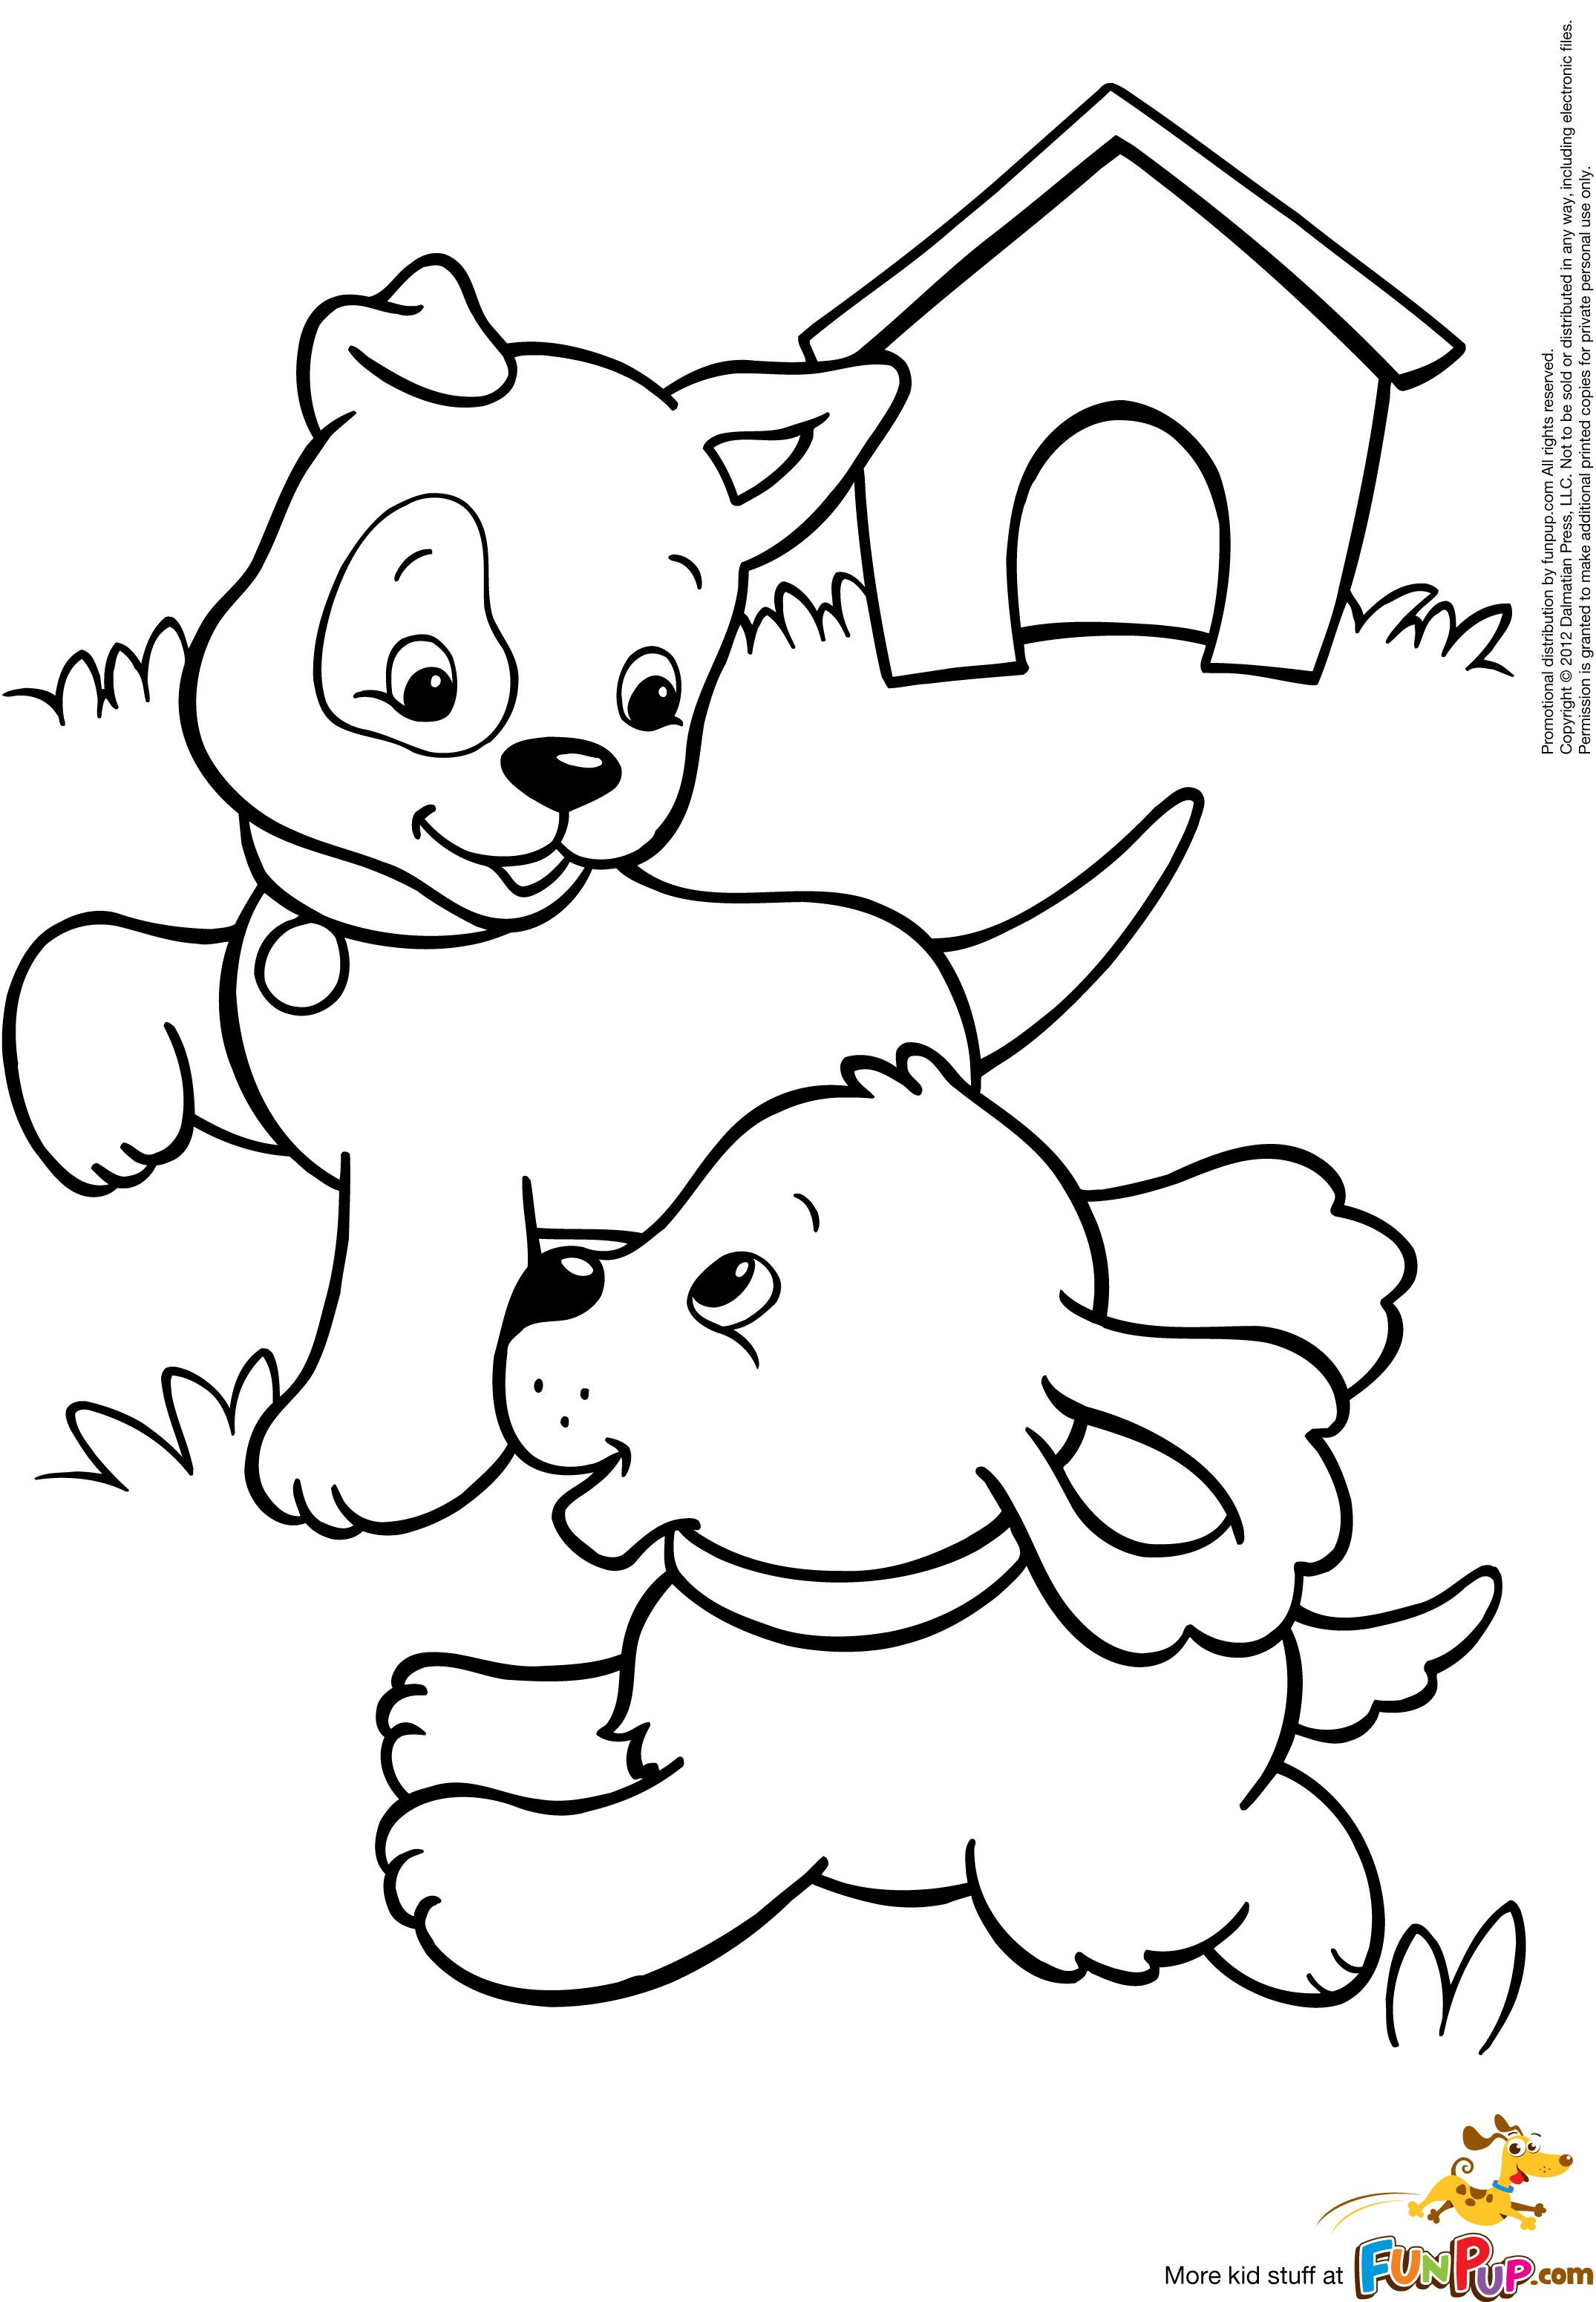 puppy pictures for coloring print download draw your own puppy coloring pages for pictures coloring puppy